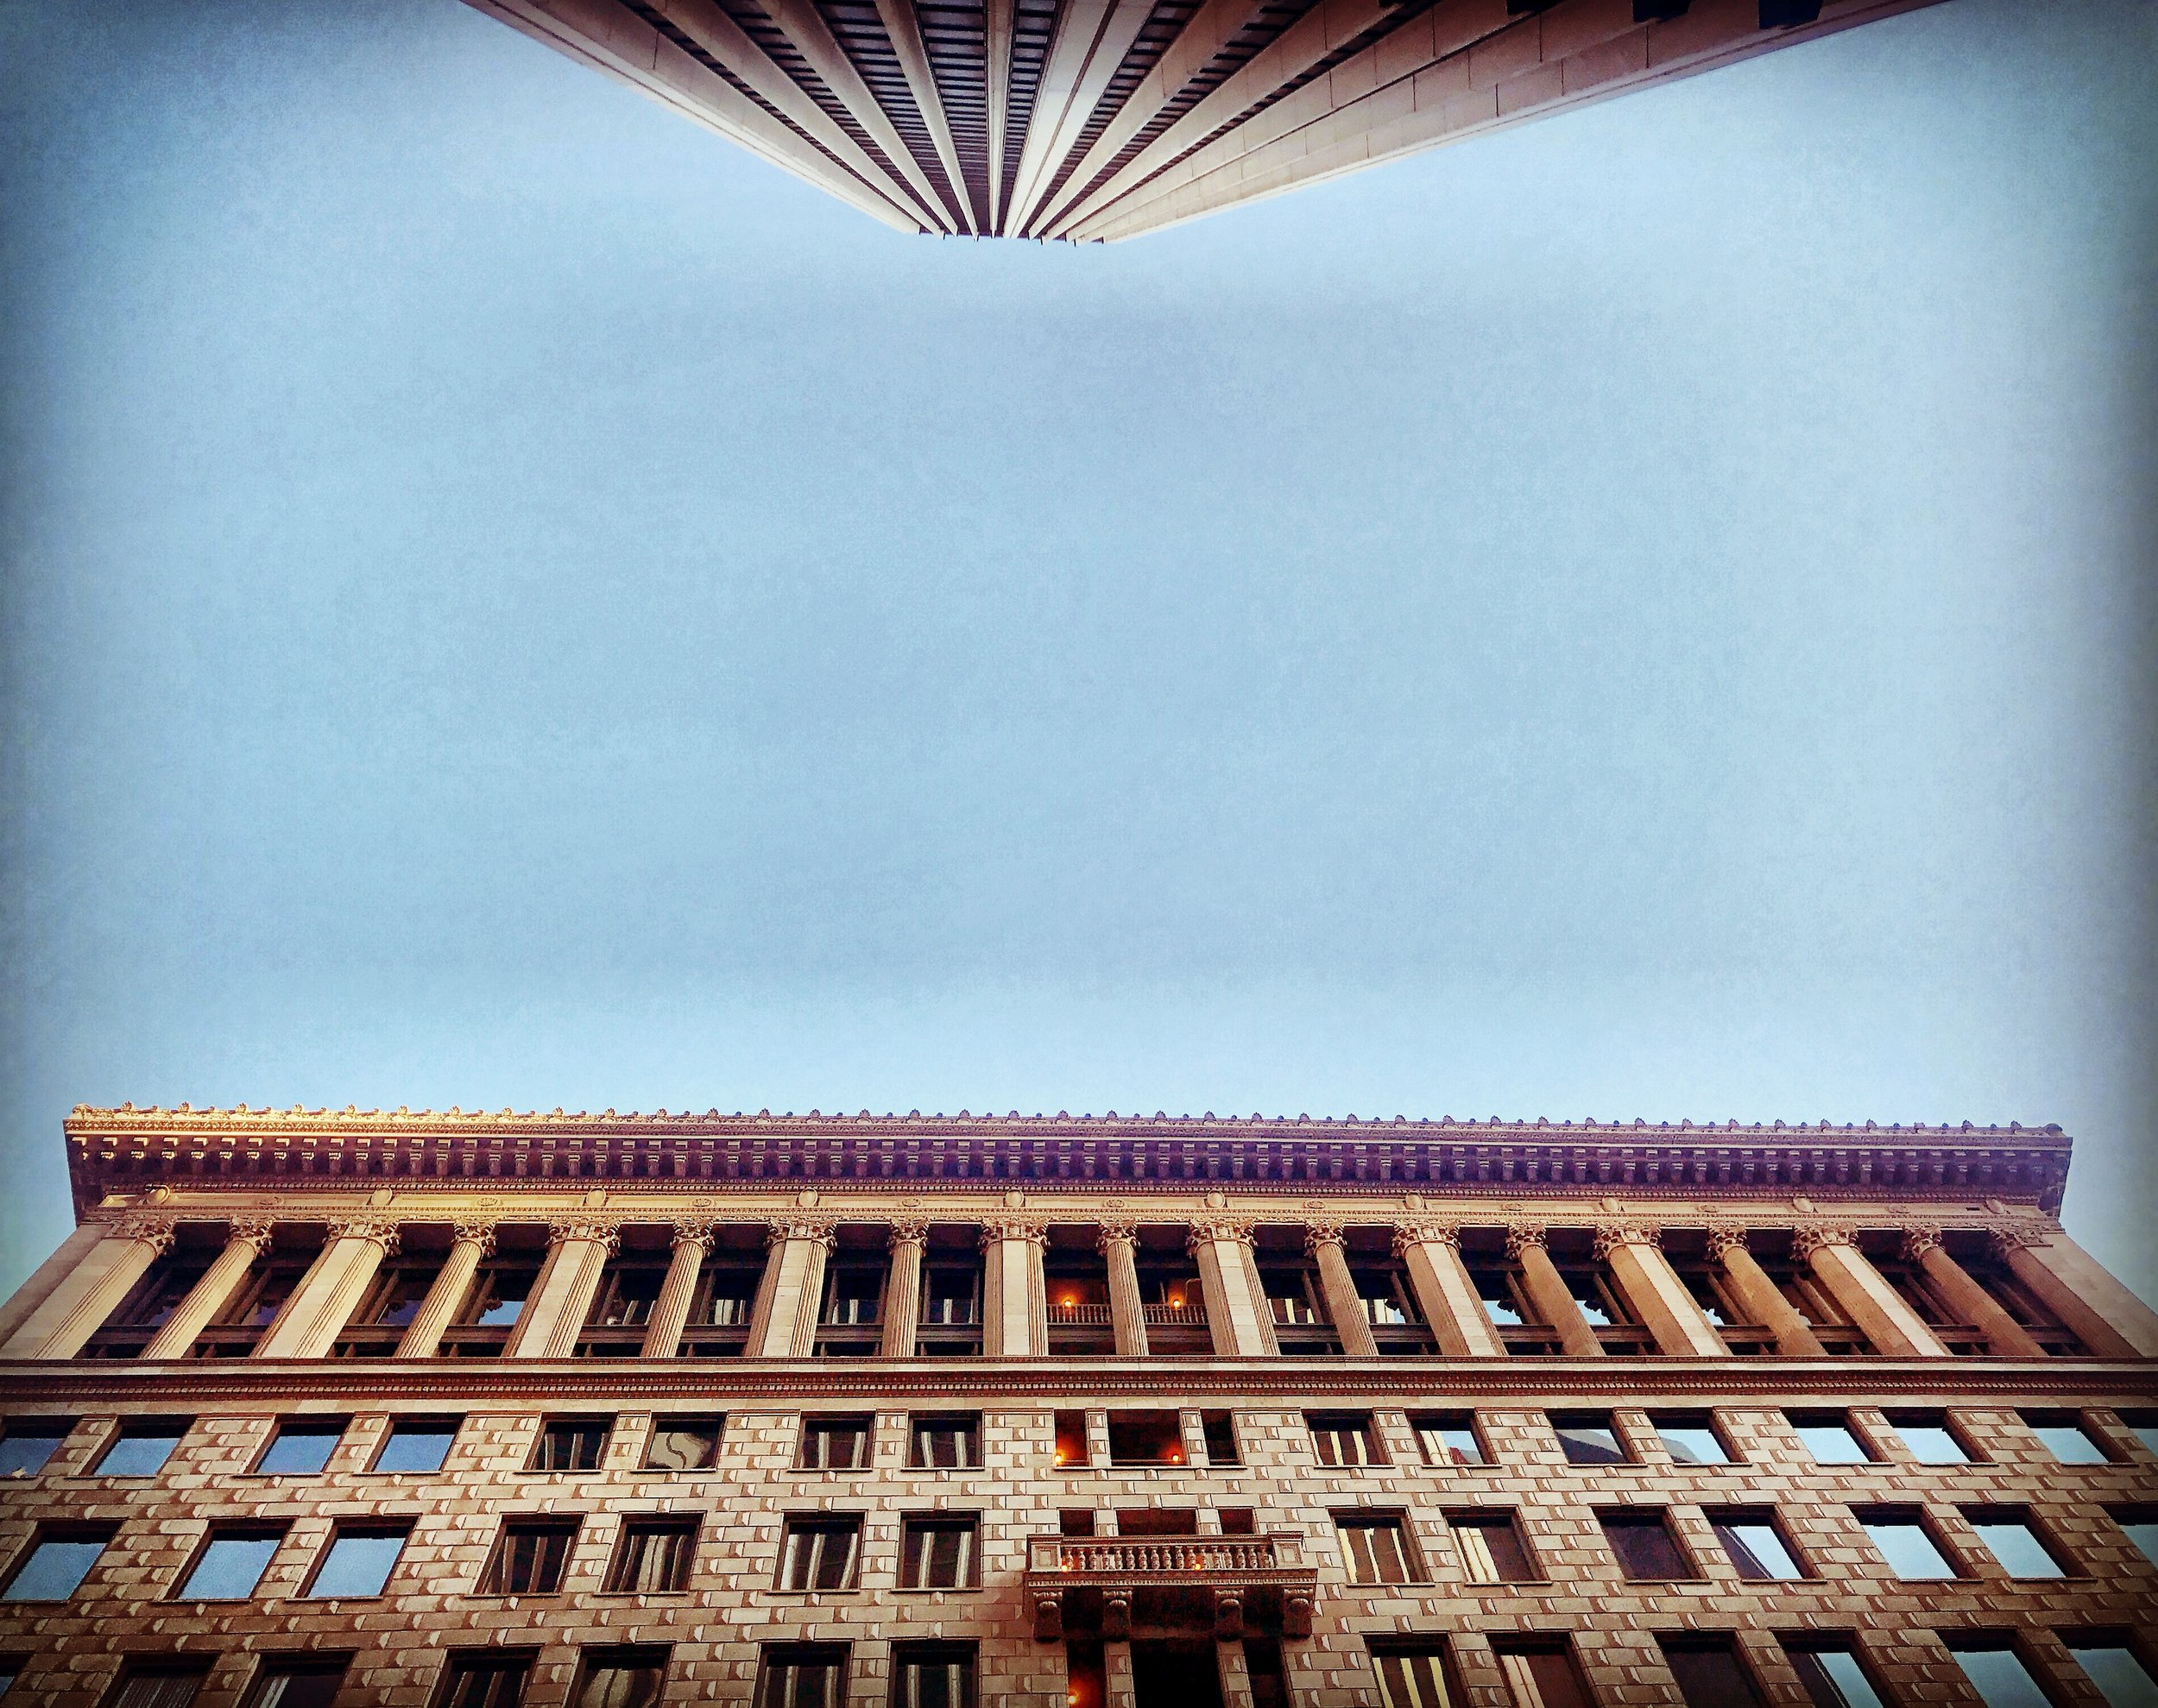 Things are looking up … - Downtown, L.A.